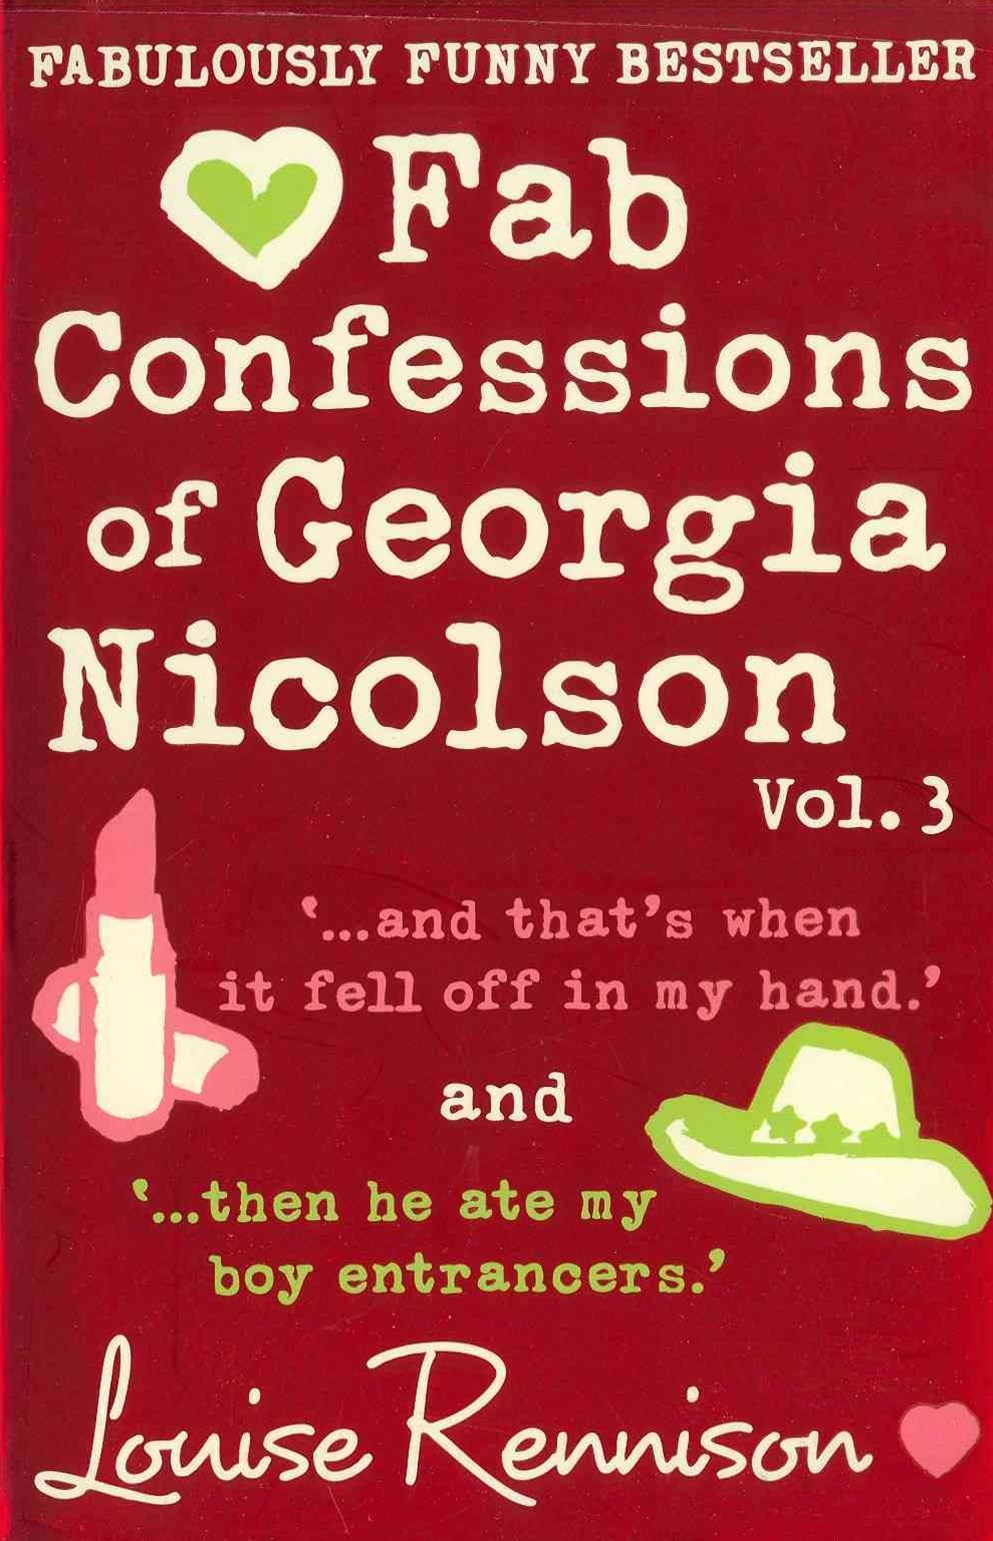 Fab Confessions Of Georgia Nicolson 5 and 6: And That's When it Fell Off